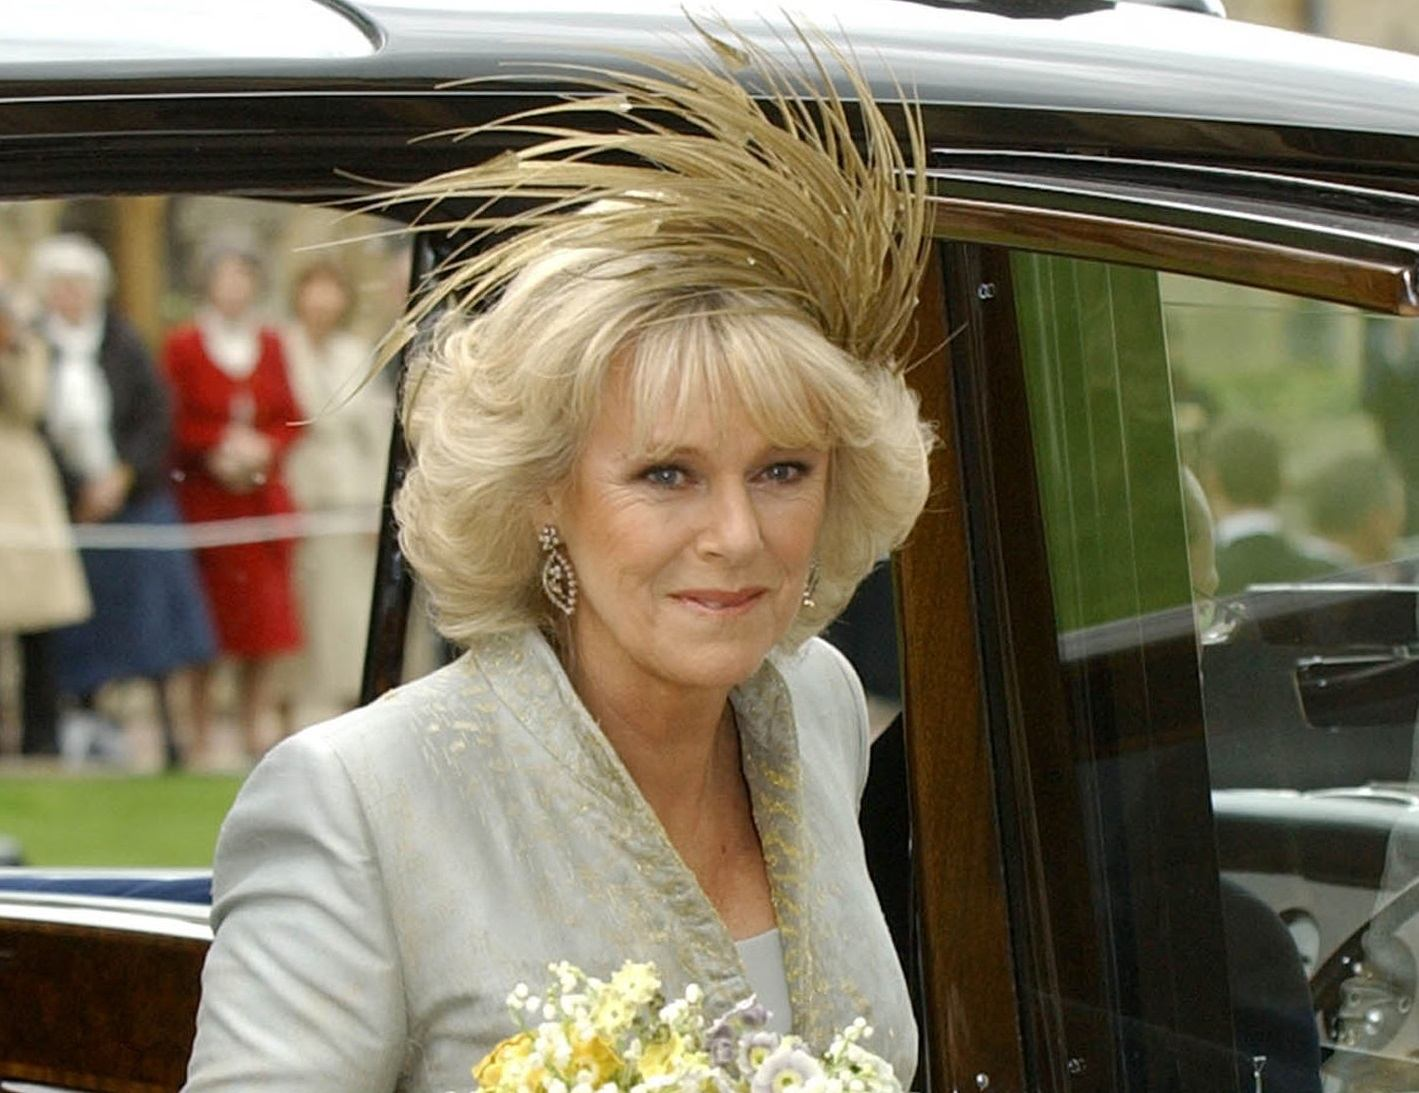 The Duchess of Cornwall, formerly Camilla Parker Bowles, arrives at St Georges Chapel in Windsor Castle after her civil wedding to Prince Charles 09 April. Prince Charles and his longtime sweetheart Camilla Parker Bowles married today after two months of muddled preparations and a lifetime of waiting.